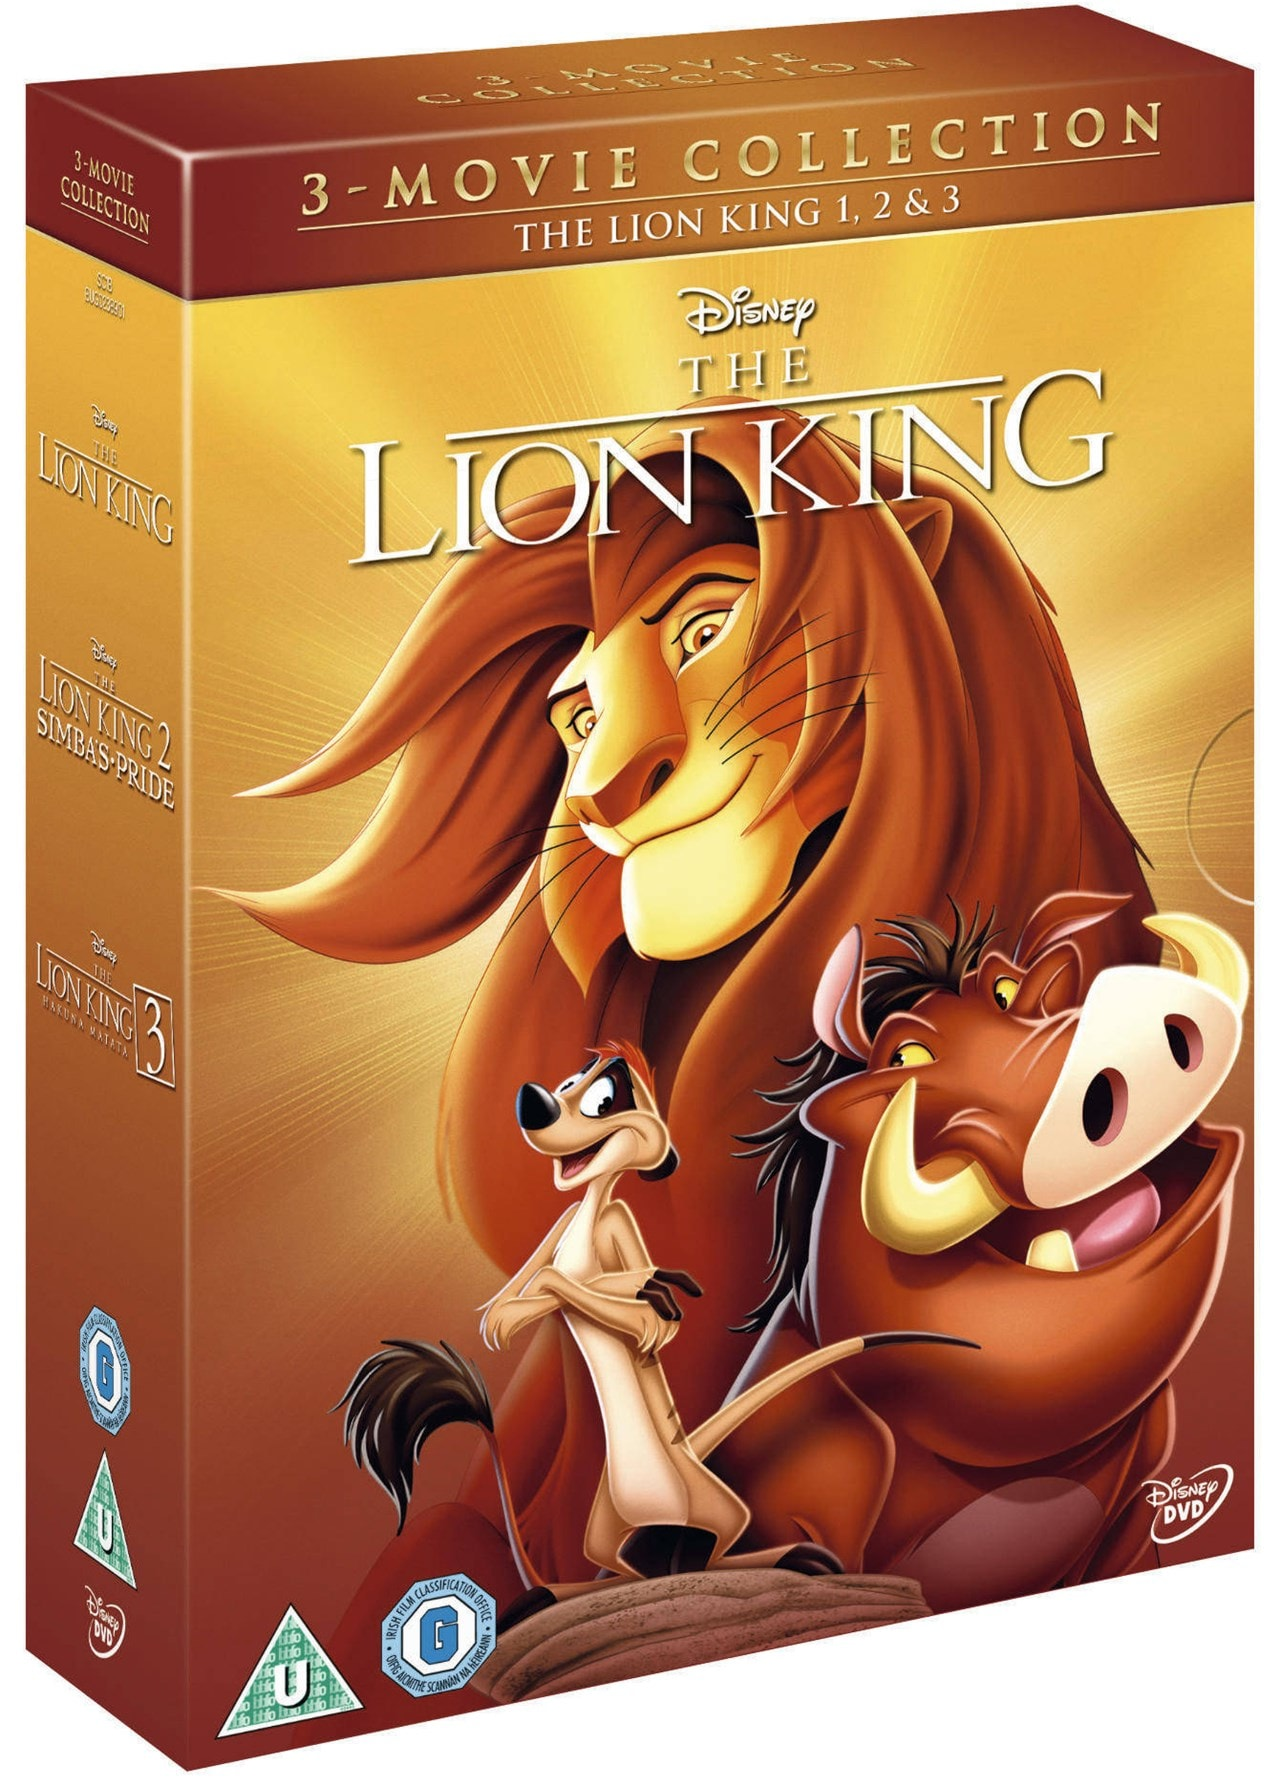 The Lion King Trilogy - 2